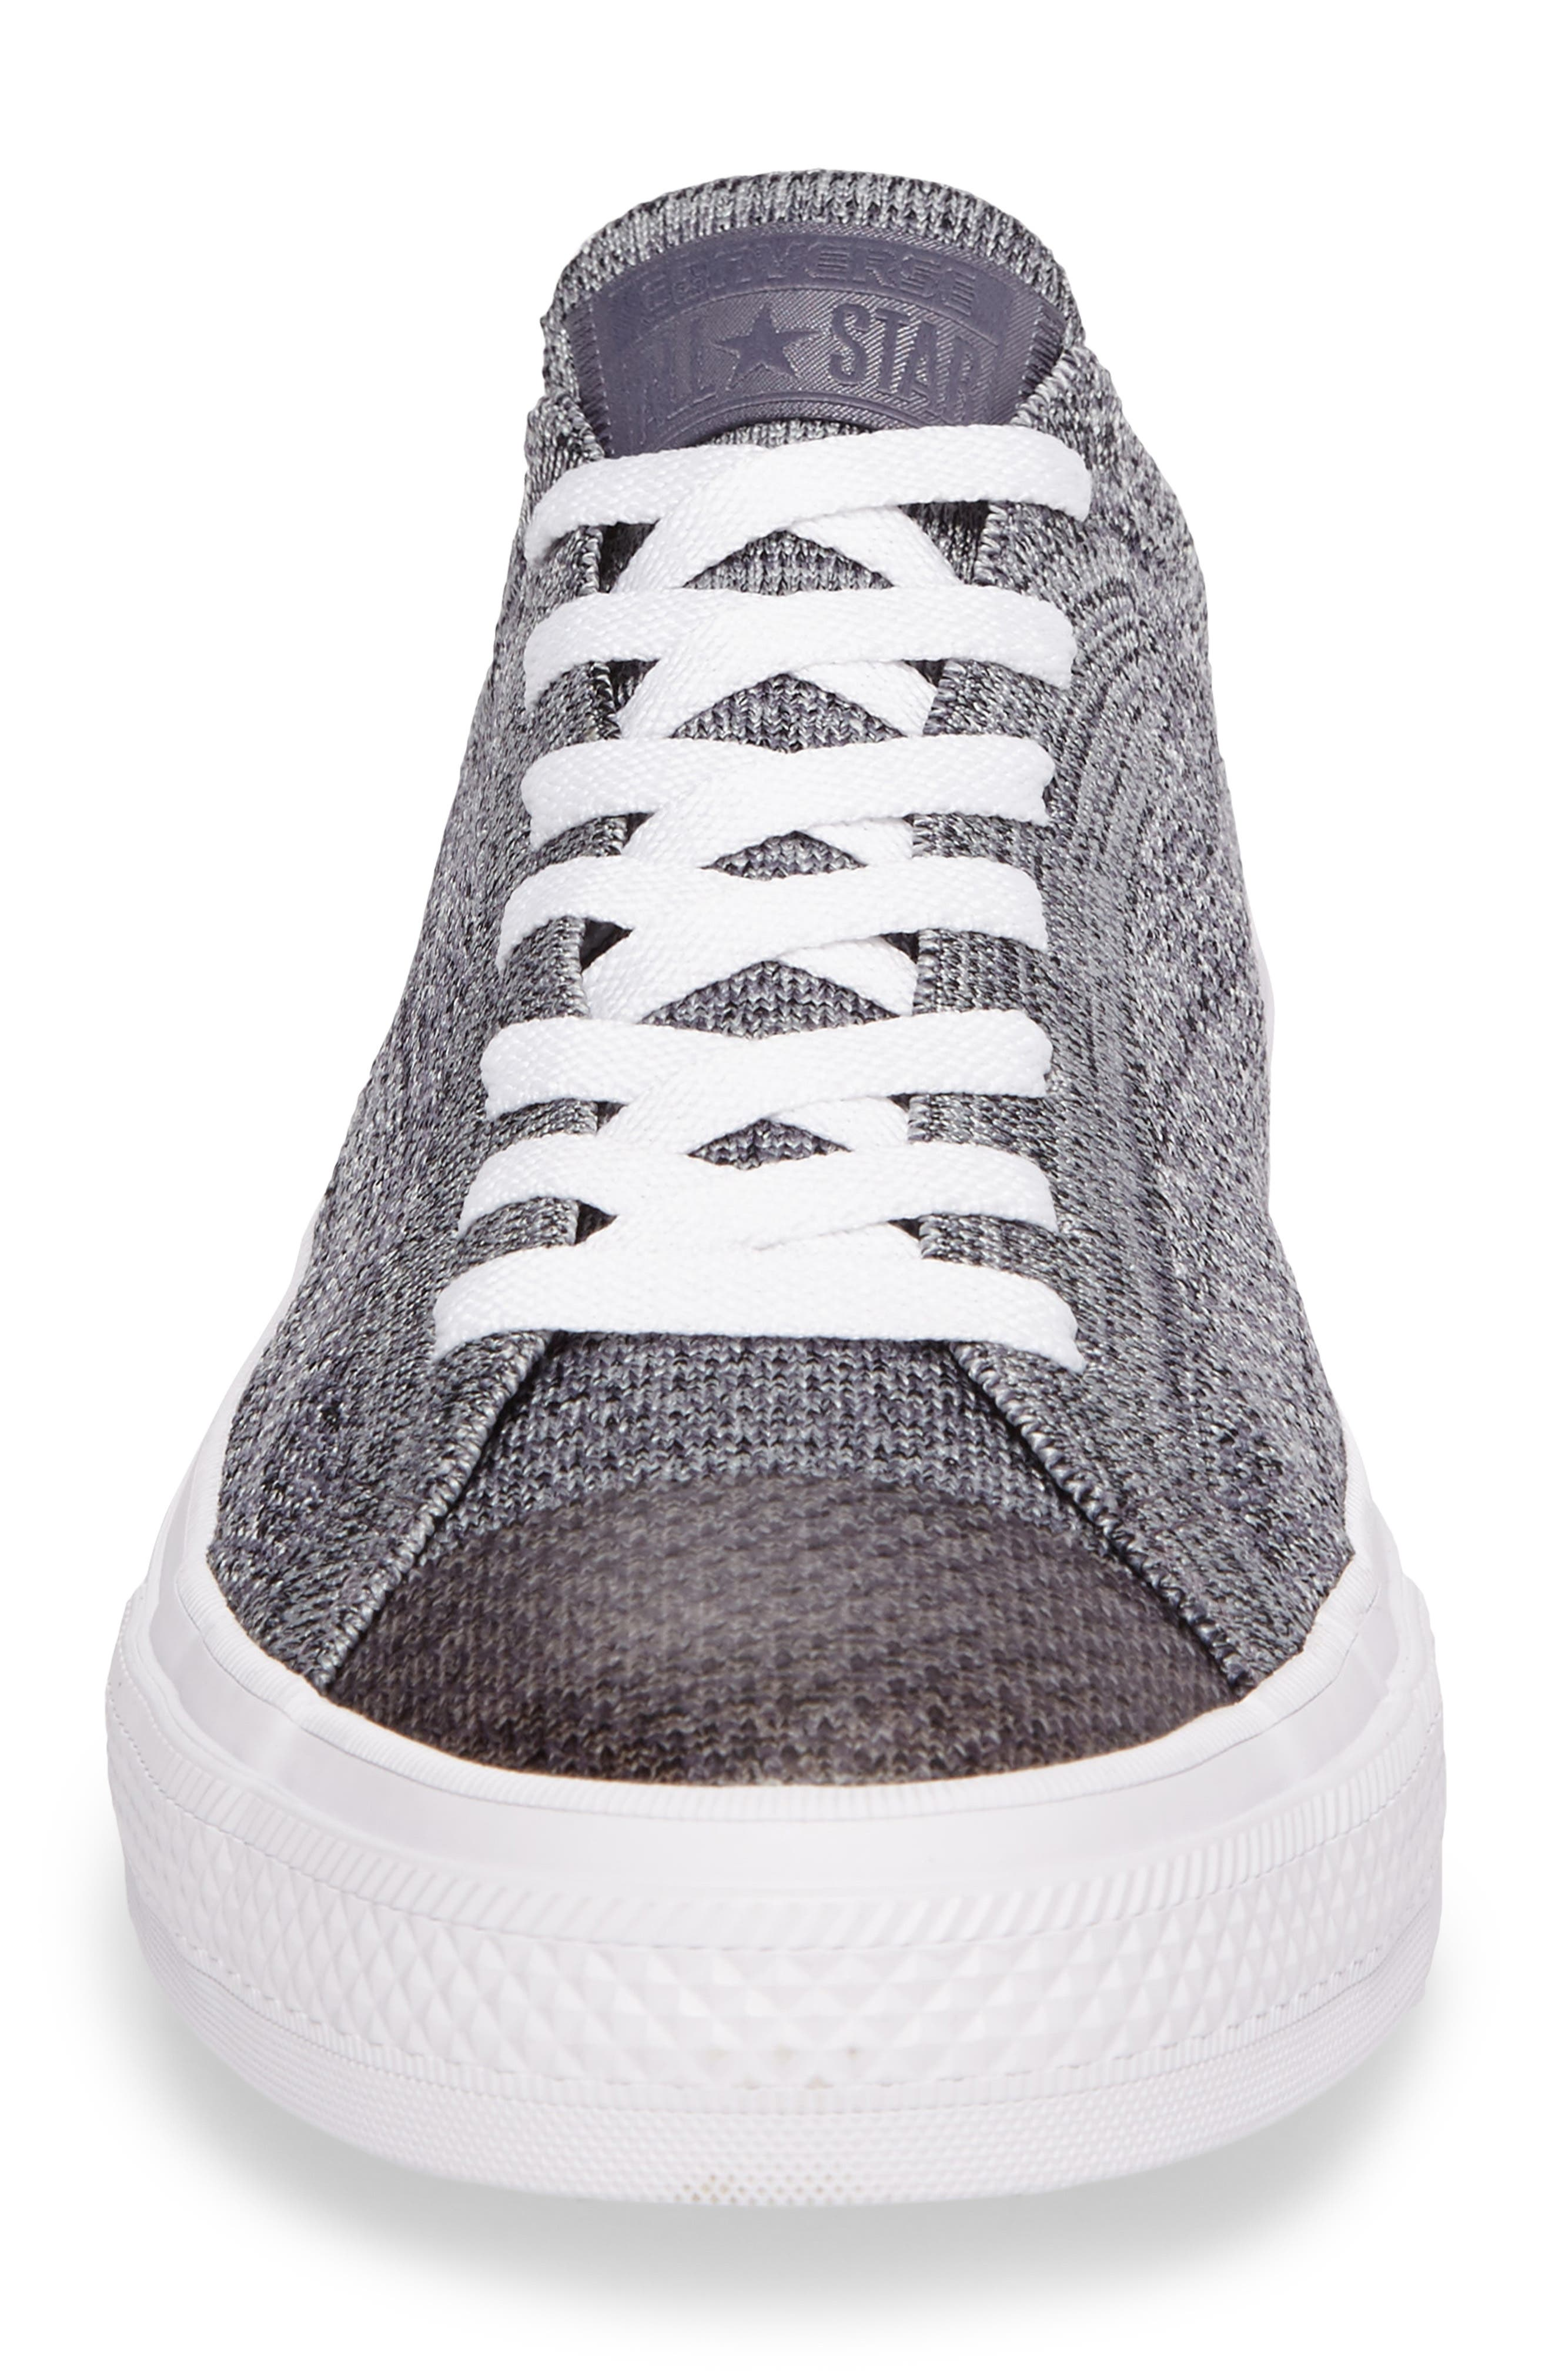 Chuck Taylor<sup>®</sup> All Star<sup>®</sup> Flyknit Sneaker,                             Alternate thumbnail 4, color,